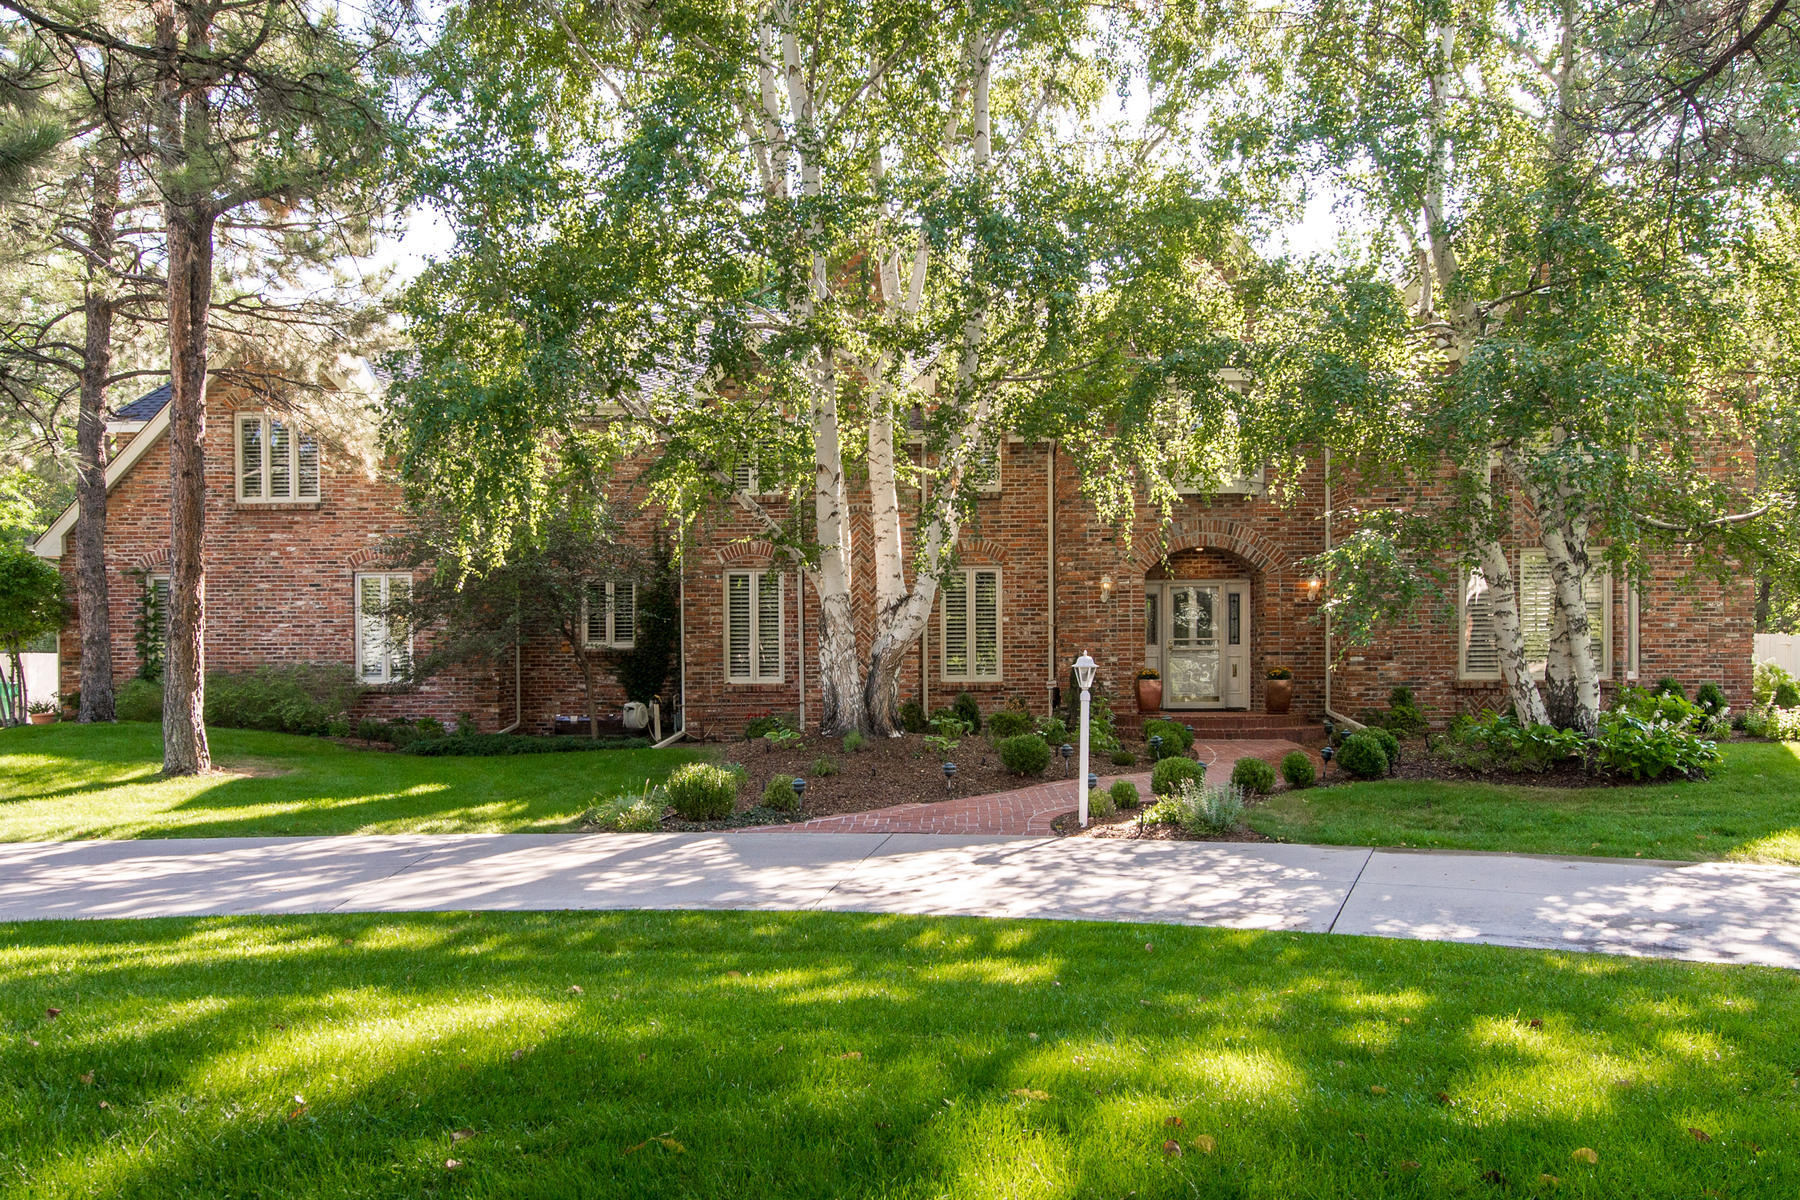 Single Family Home for Active at Beautiful Old Cherry Hills Estate 4810 S. Lafayette Ln Cherry Hills Village, Colorado 80113 United States